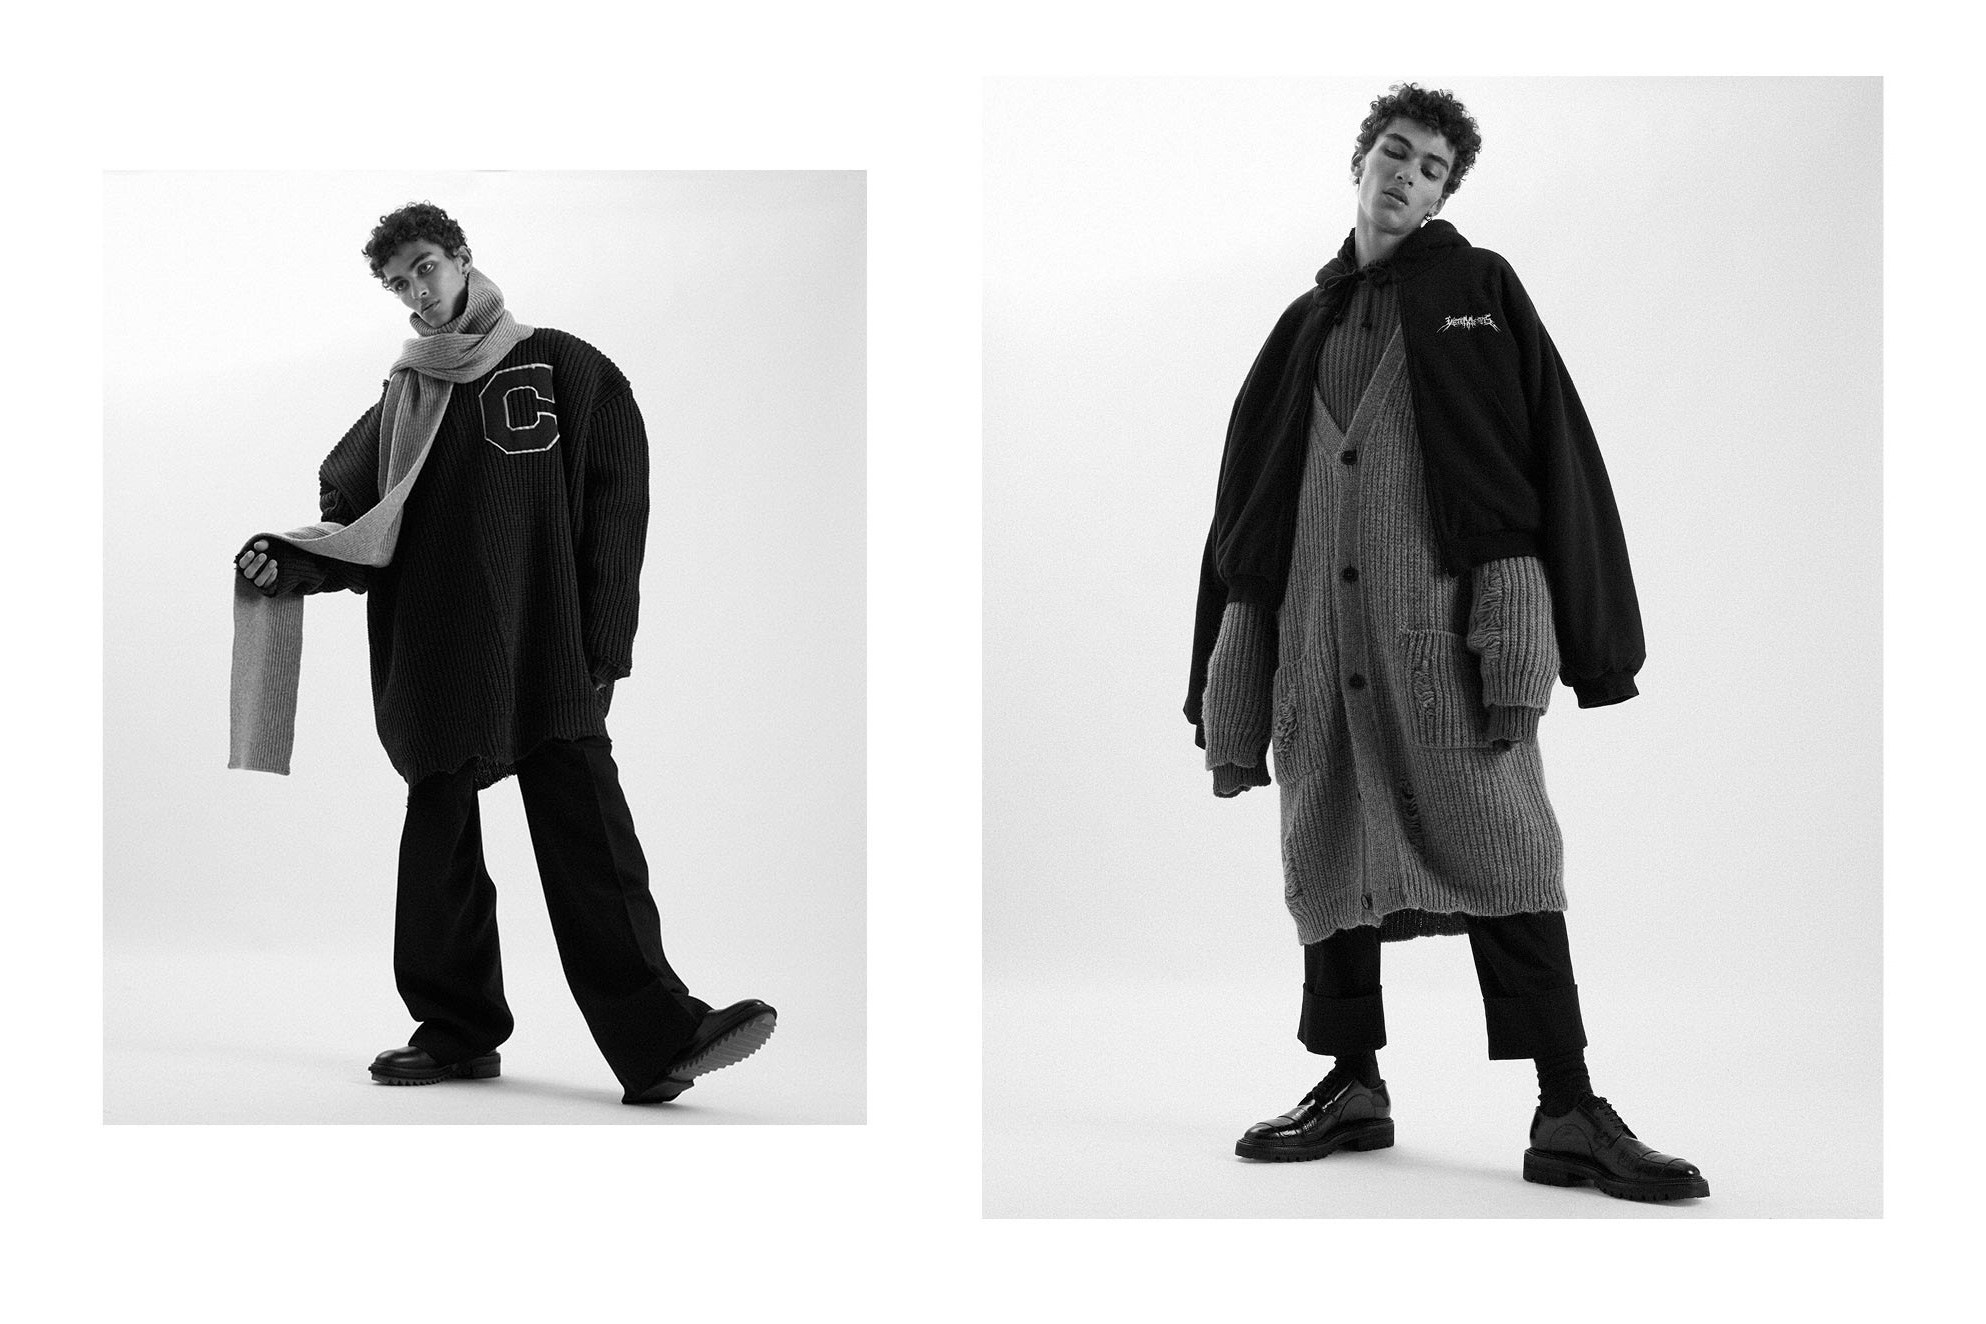 ln-cc-oversized-youth-editorial-1